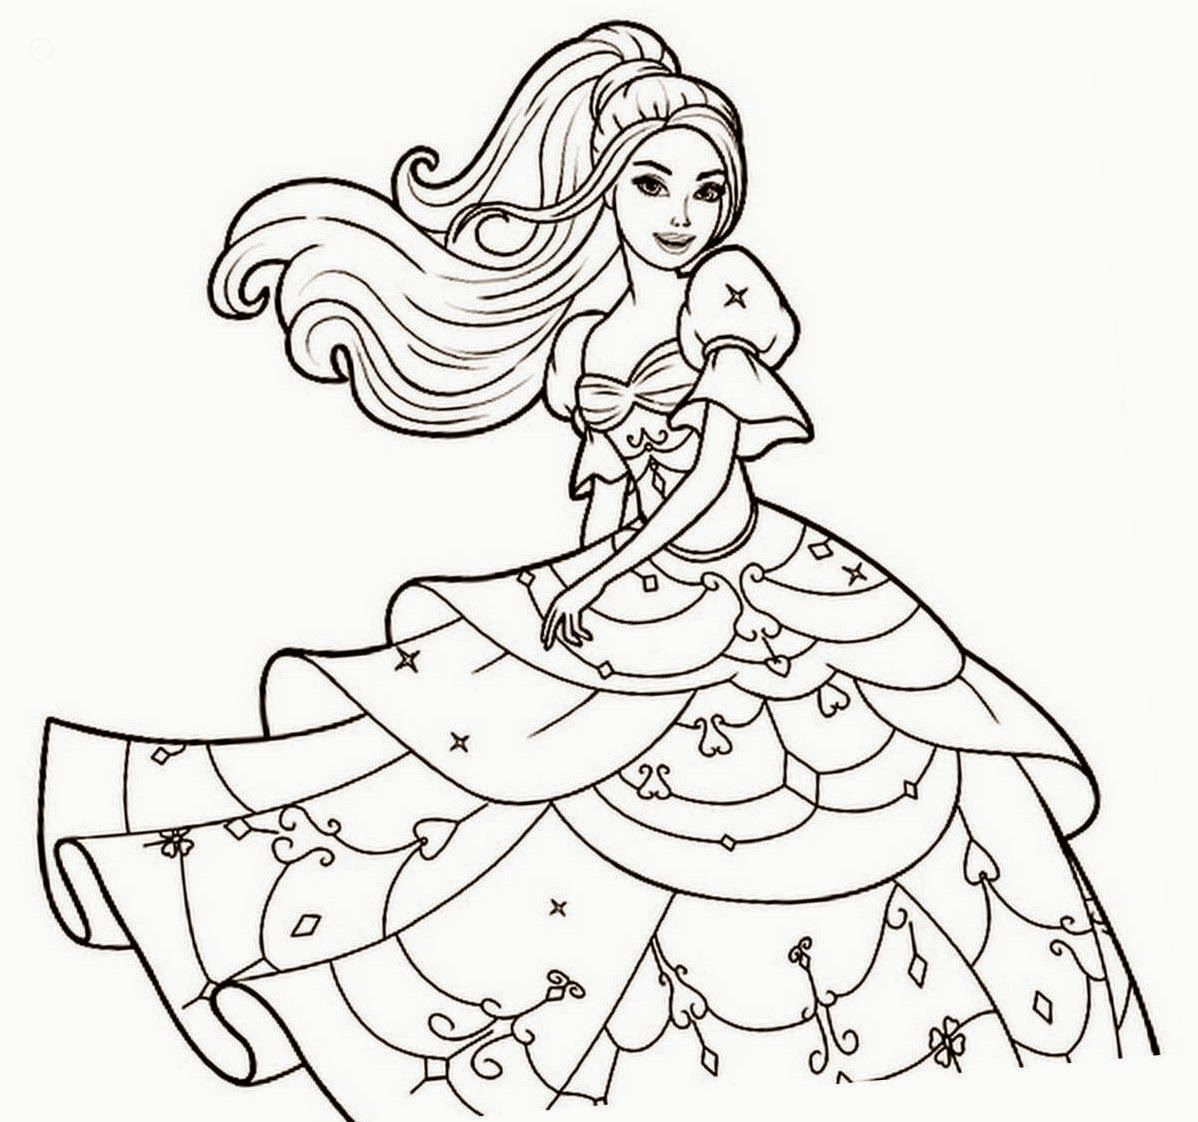 Nice Barbie Coloring Colour Drawing Free Wallpaper Check More At Http Www Mcoloring Com Index P Barbie Coloring Barbie Coloring Pages Princess Coloring Pages